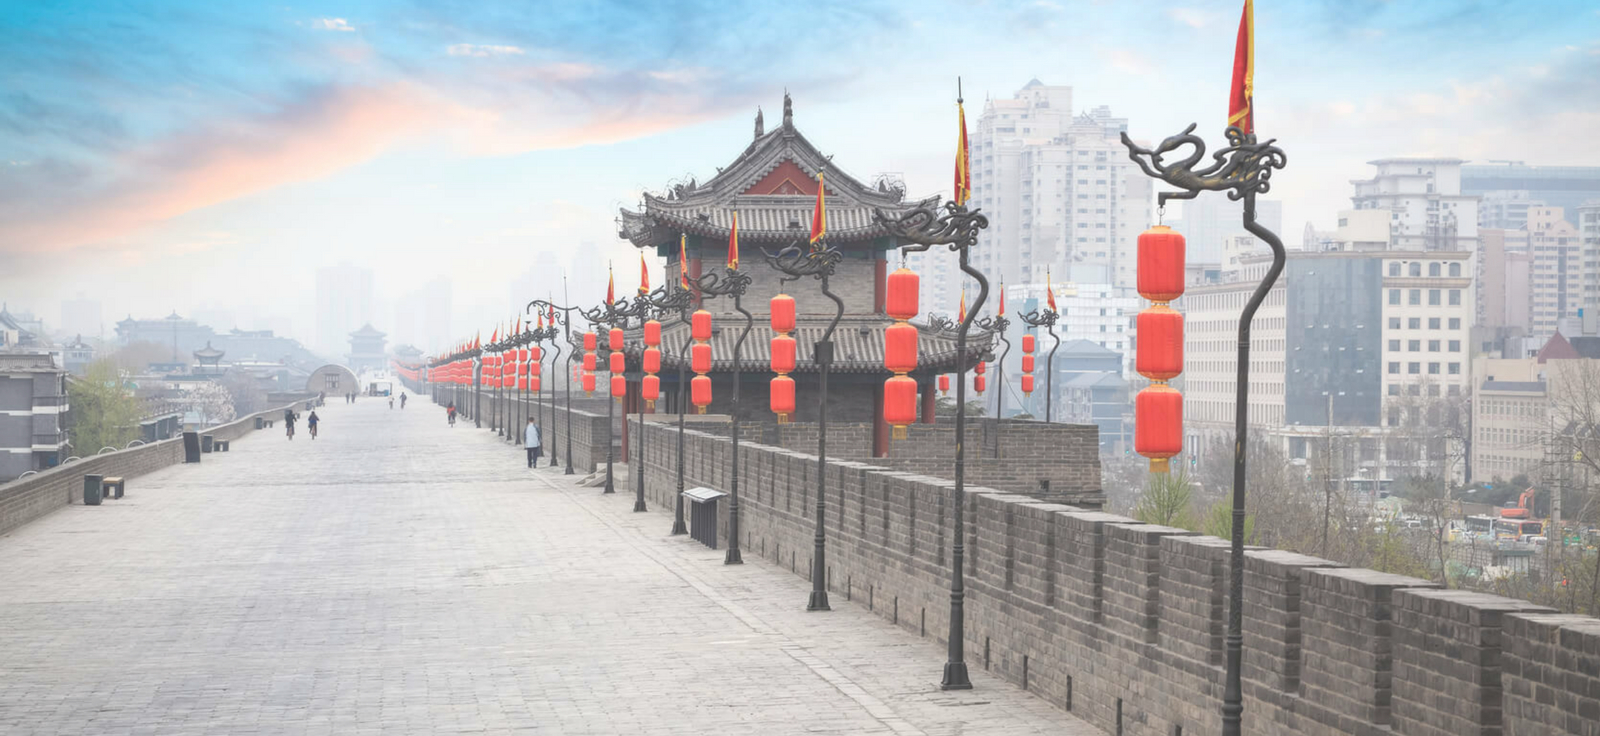 teaching english in xi'an